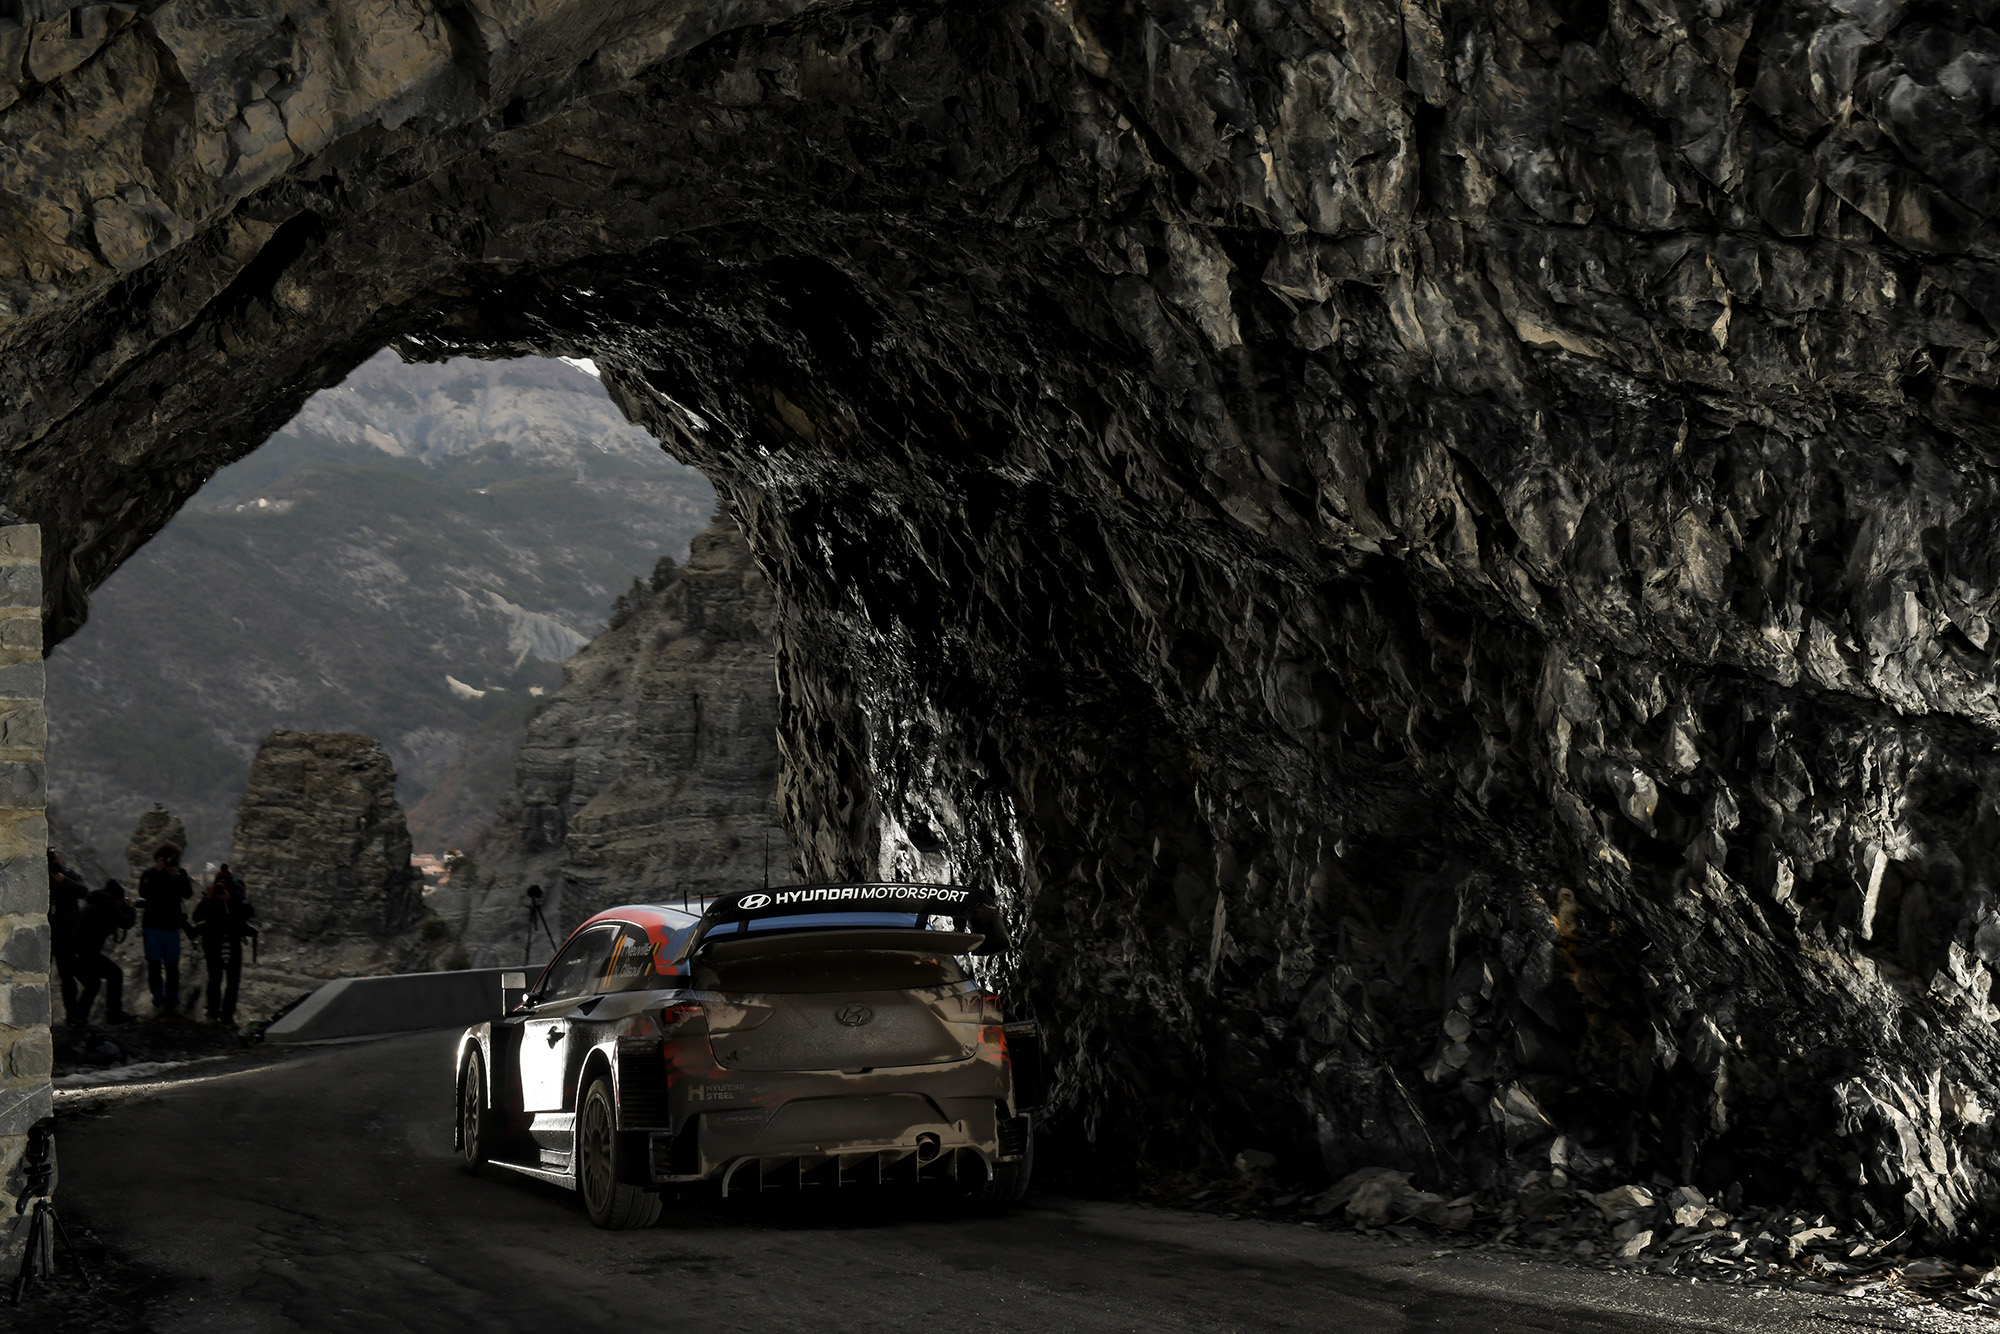 Thierry Neuville drives under a rock arch in the Alpine stages of the 2020 Monte Carlo Rally